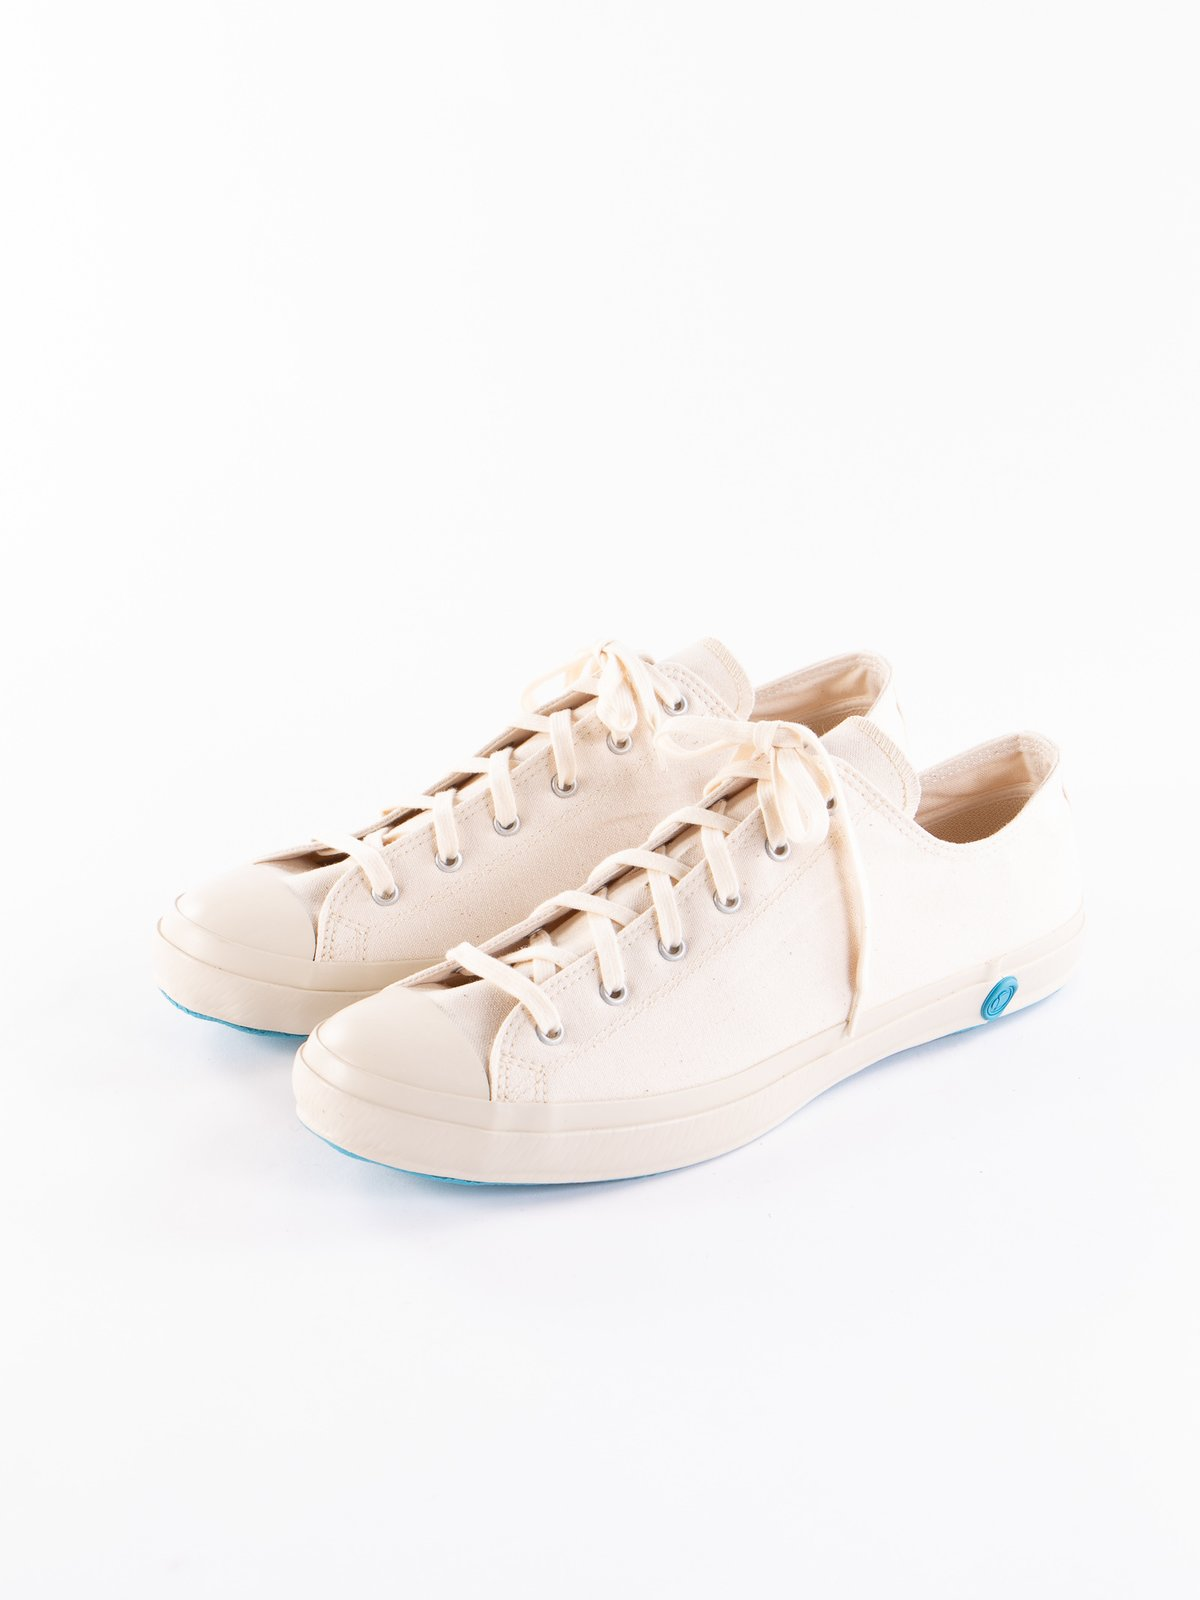 White 01JP Low Trainer - Image 2